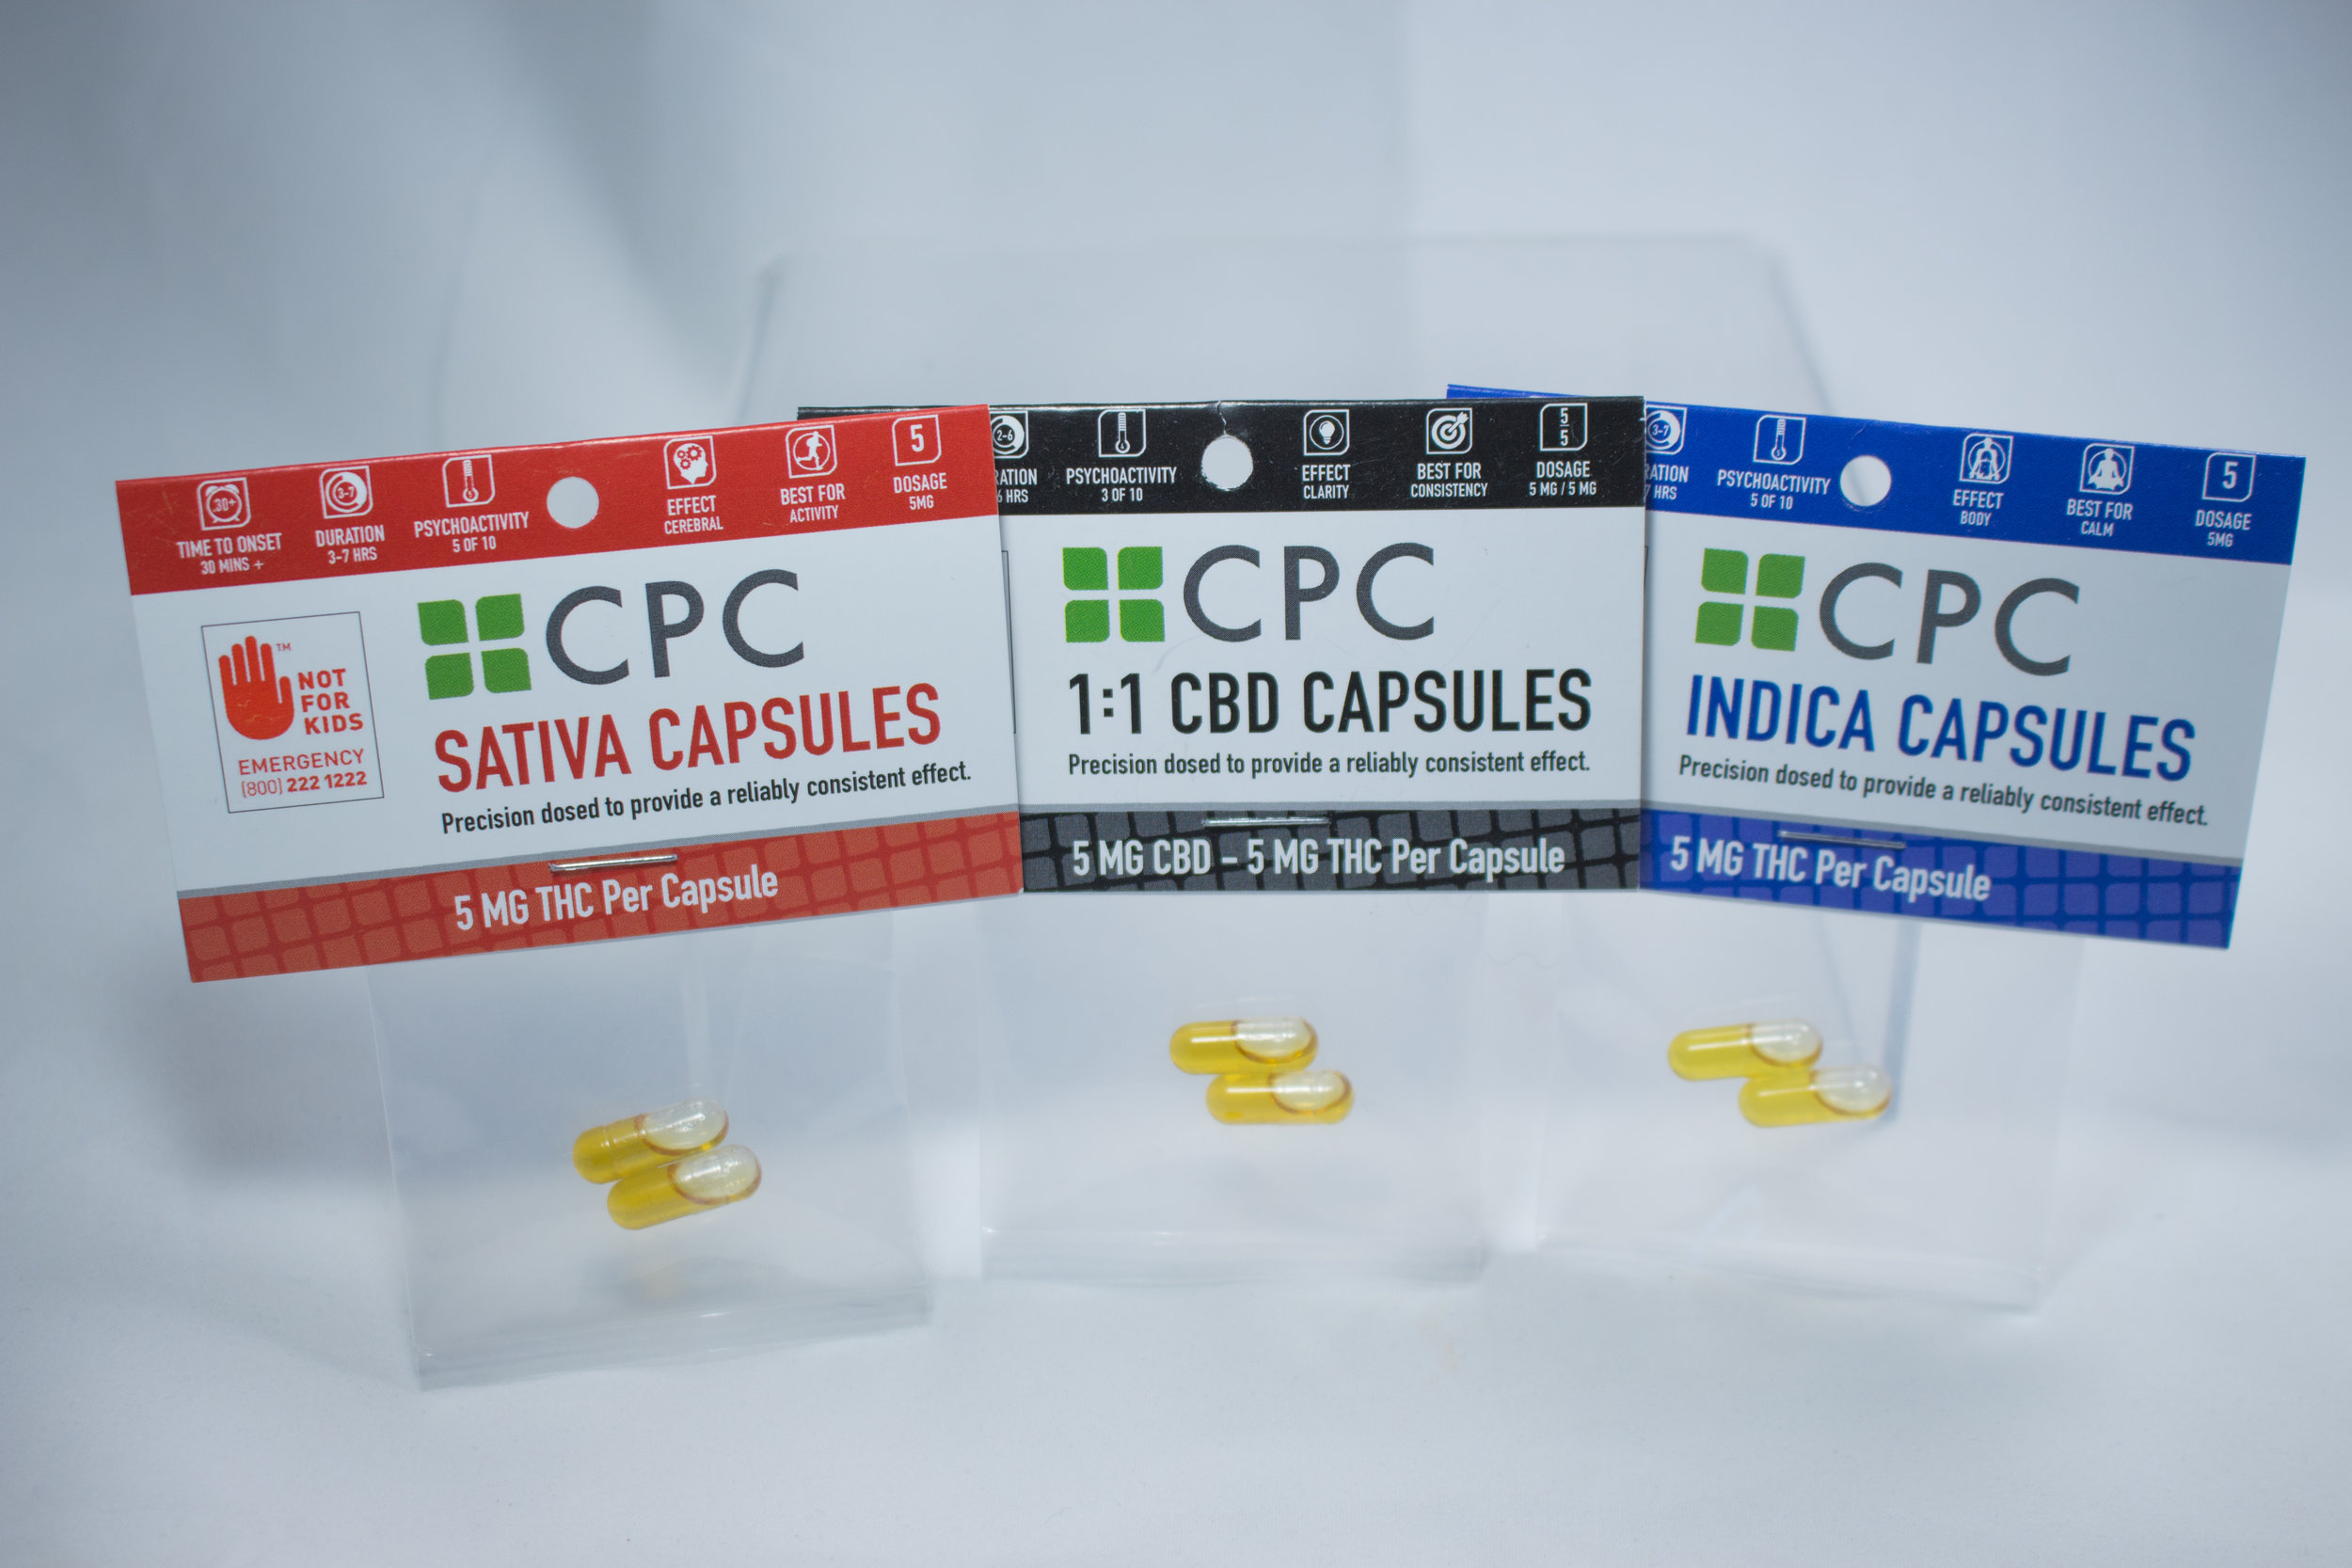 Capsules   You are looking for a rich and potent dose in a simple method of ingestion. CPC Capsules are a cannabis extract blend in first run cold press olive oil. Try a dose, see how it effects you, build a regimen, get back to you.  Learn more...